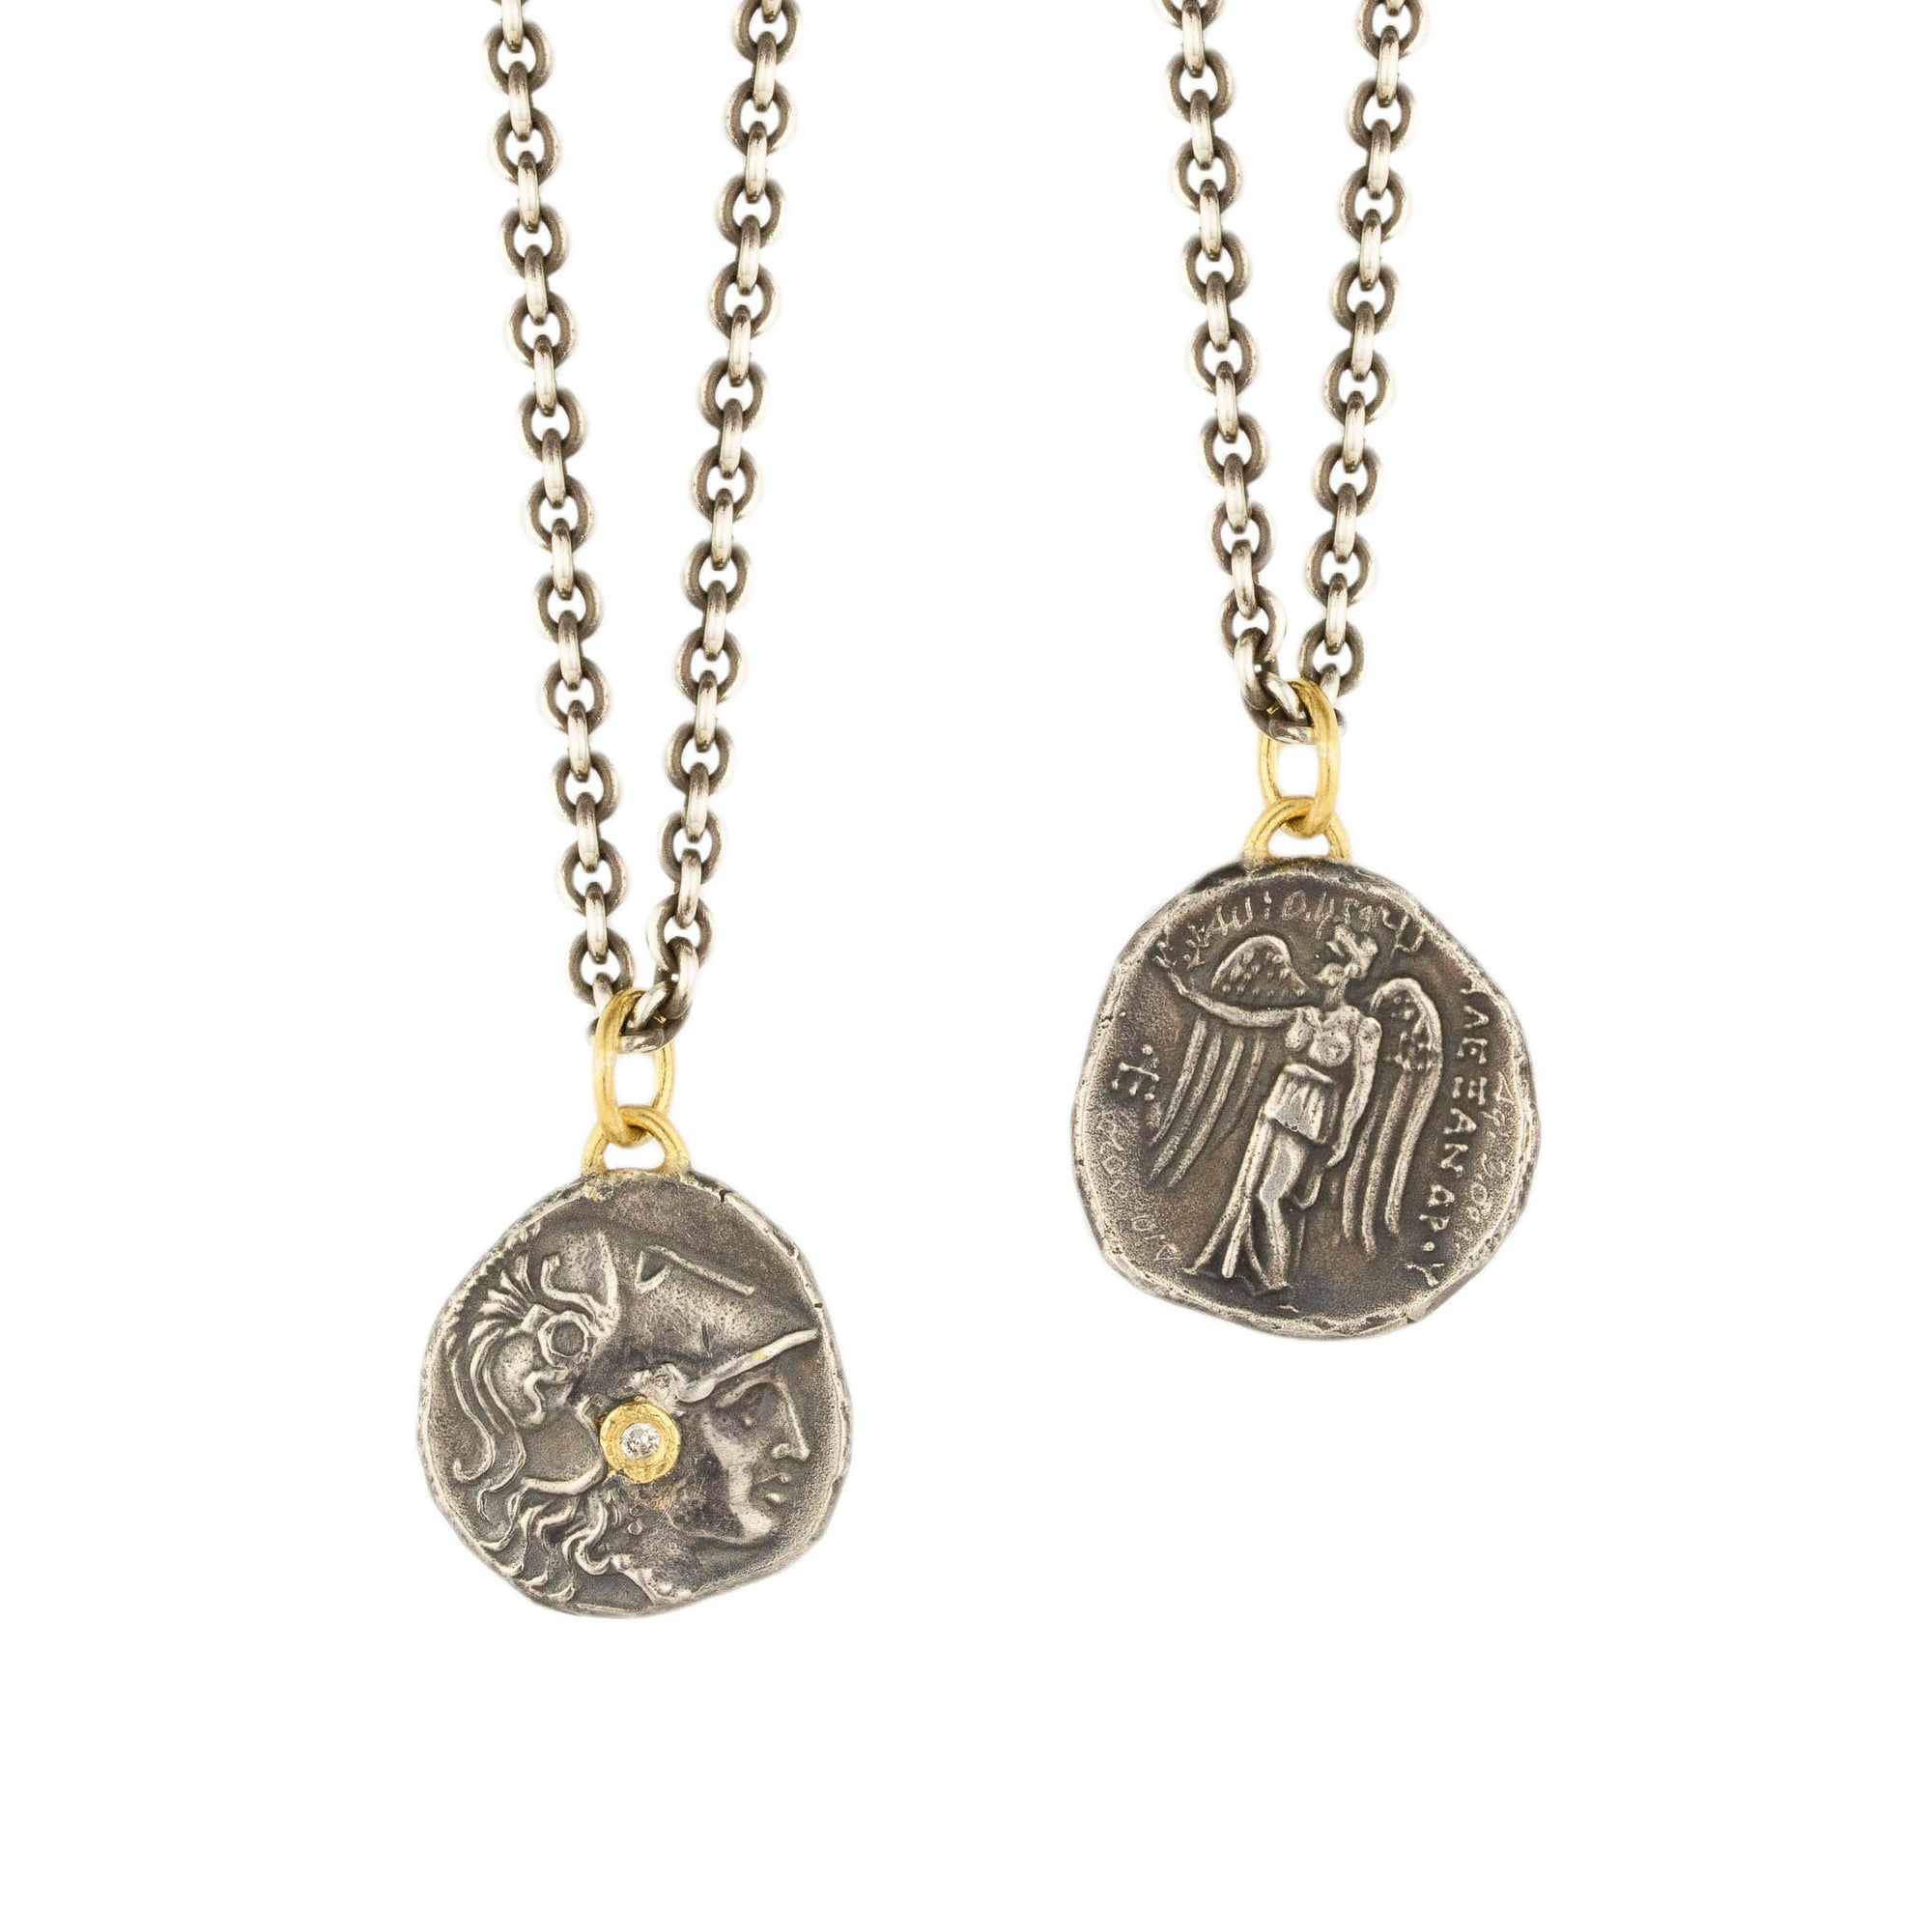 Athena / Wisdom Goddess Necklace